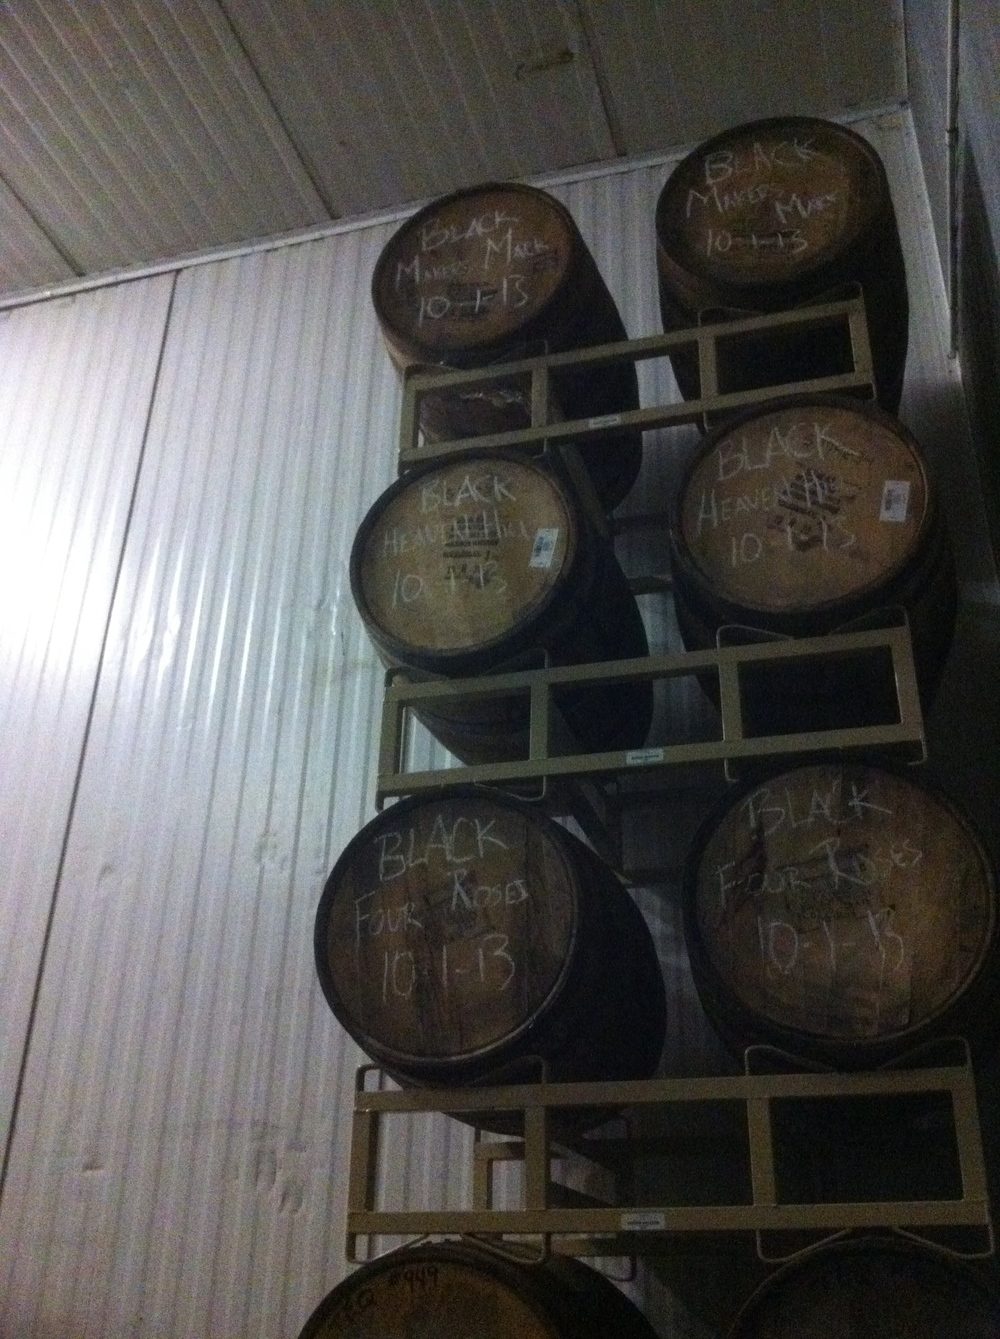 The barrel aging room at Allagash, Allagash Brewing Company, Portland